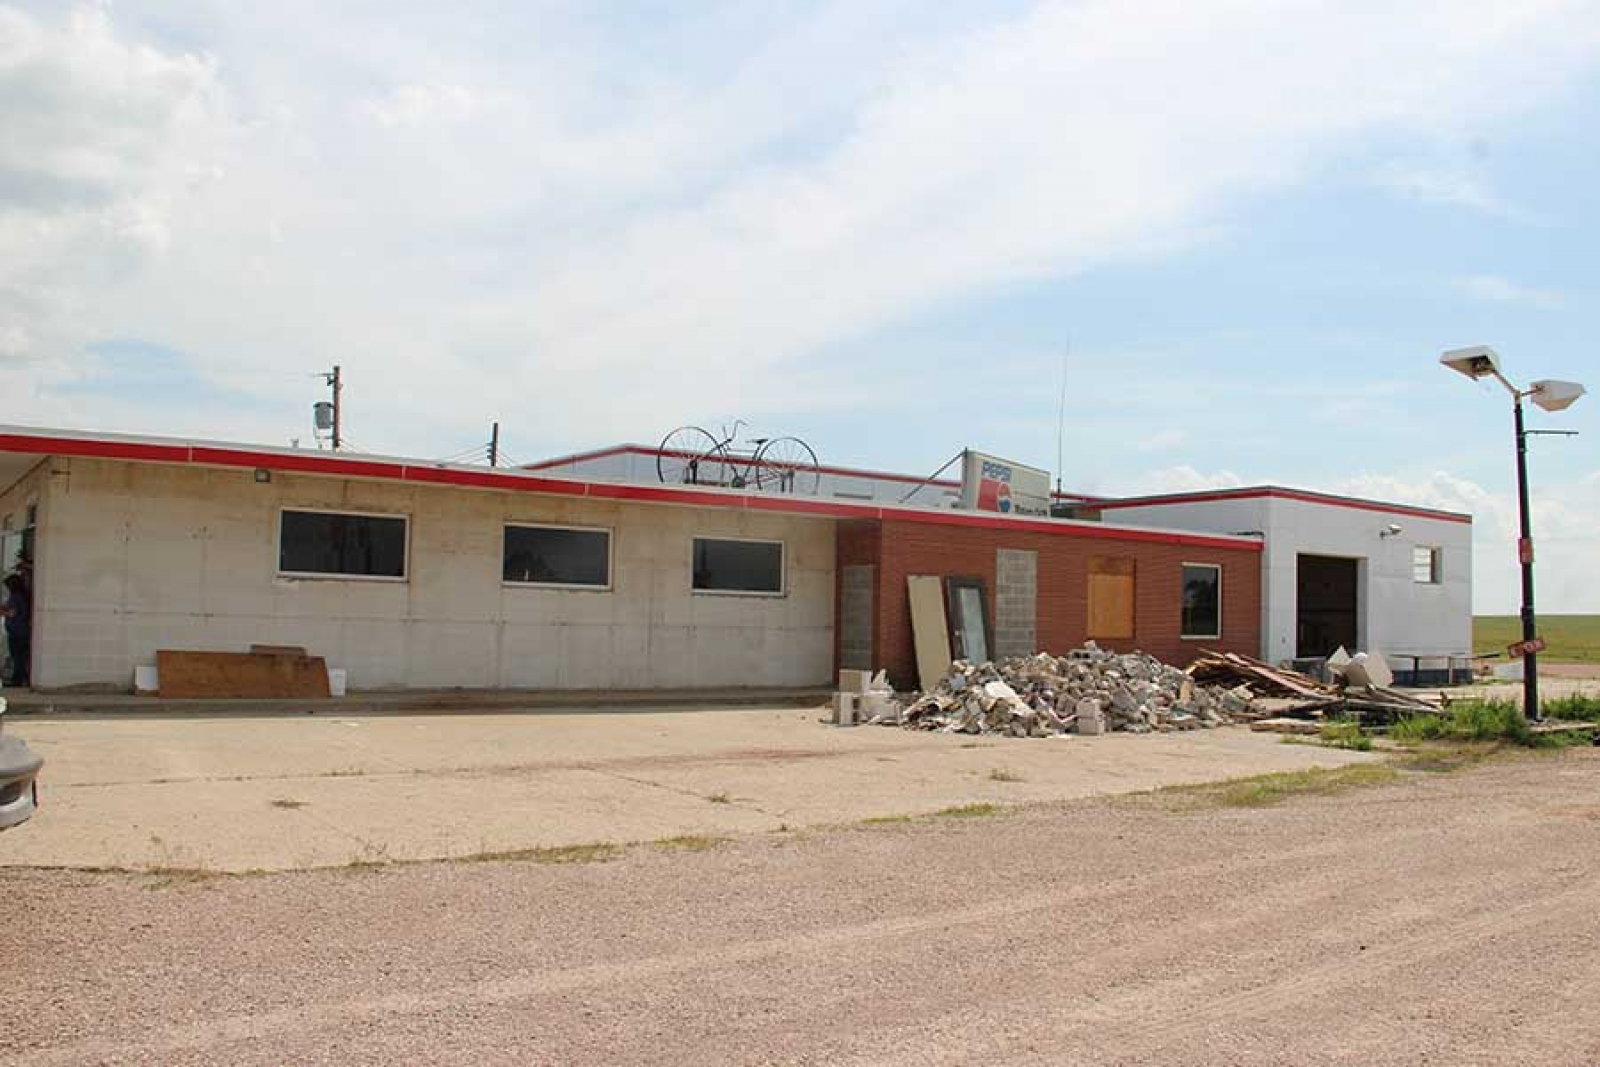 Hugen and Houx invest in old truck stop, look to open Benny's before fair